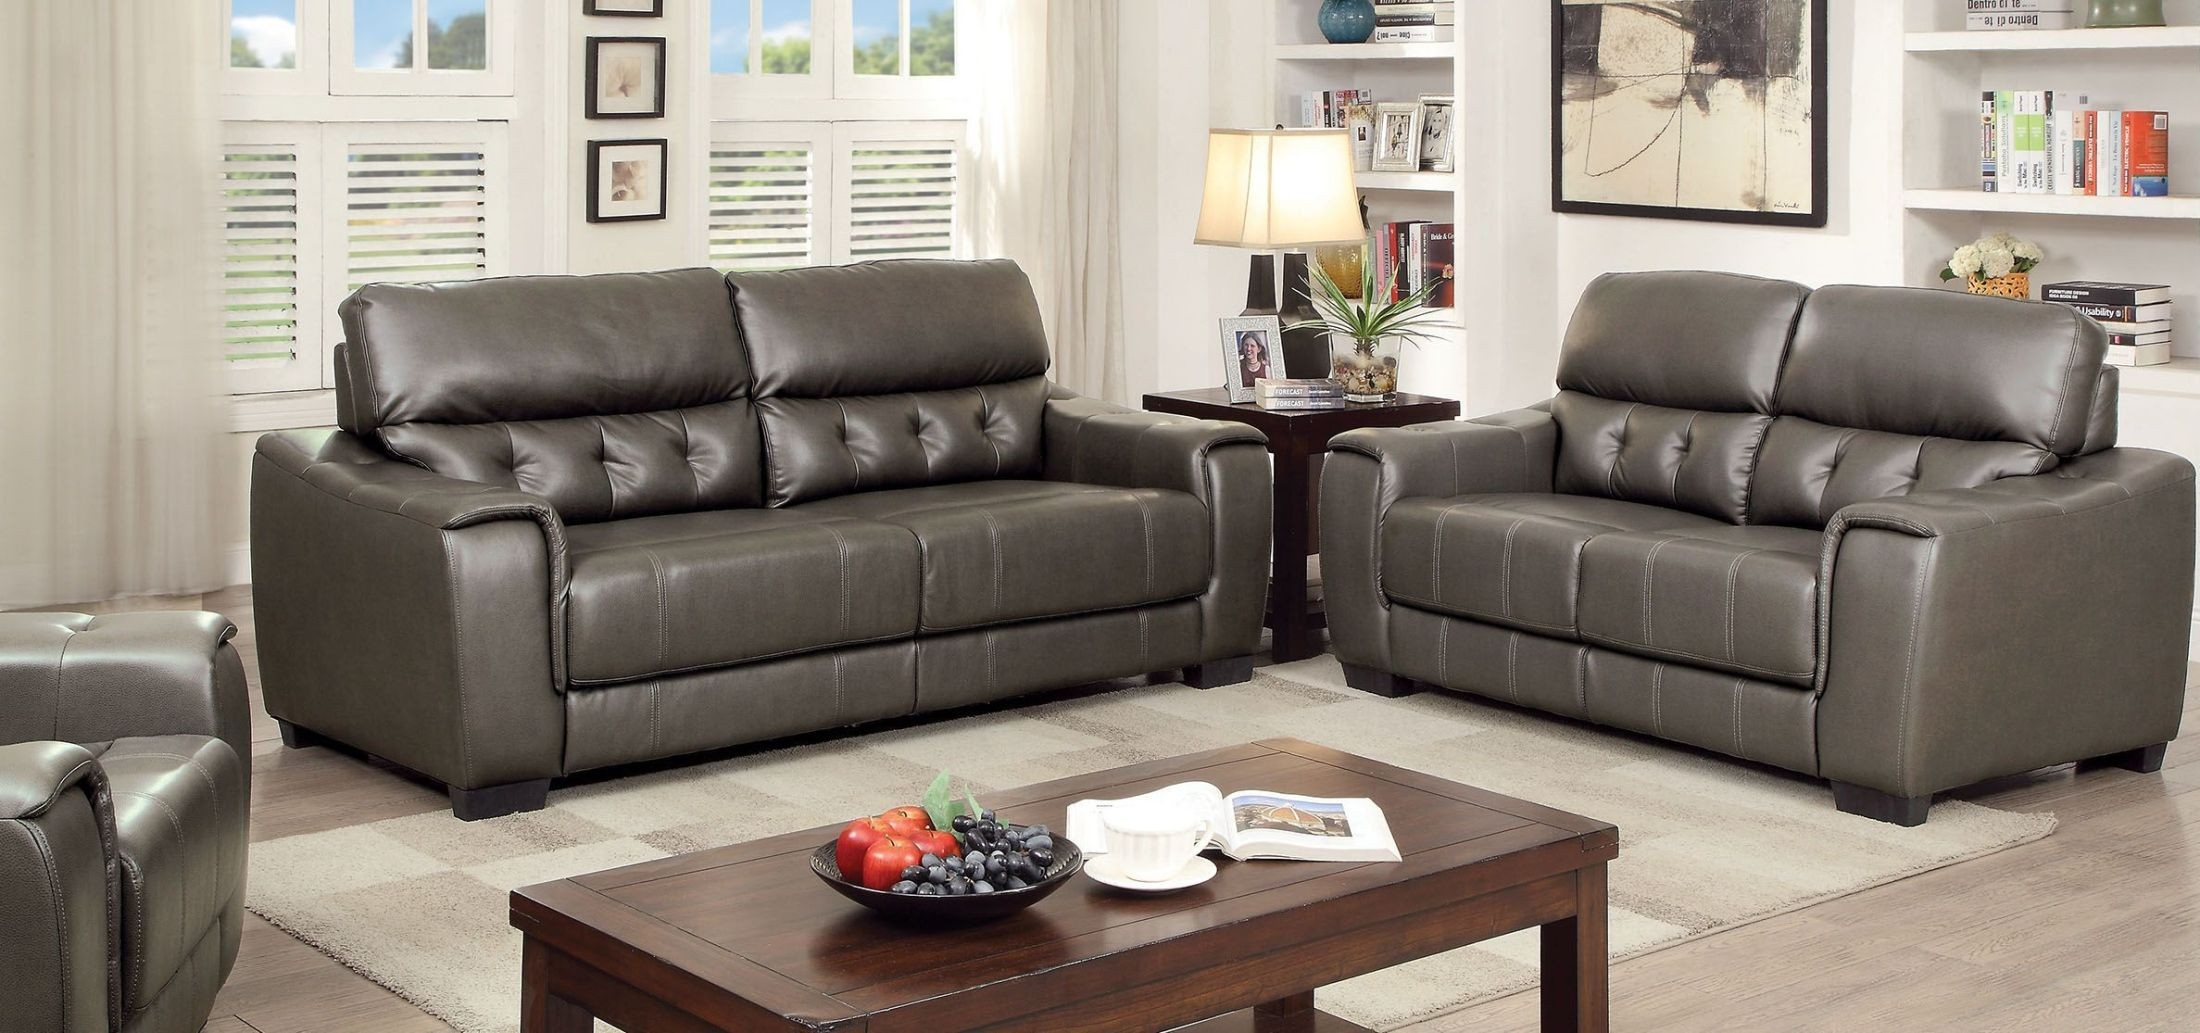 Randa dark gray living room set from furniture of america for Gray living room black furniture